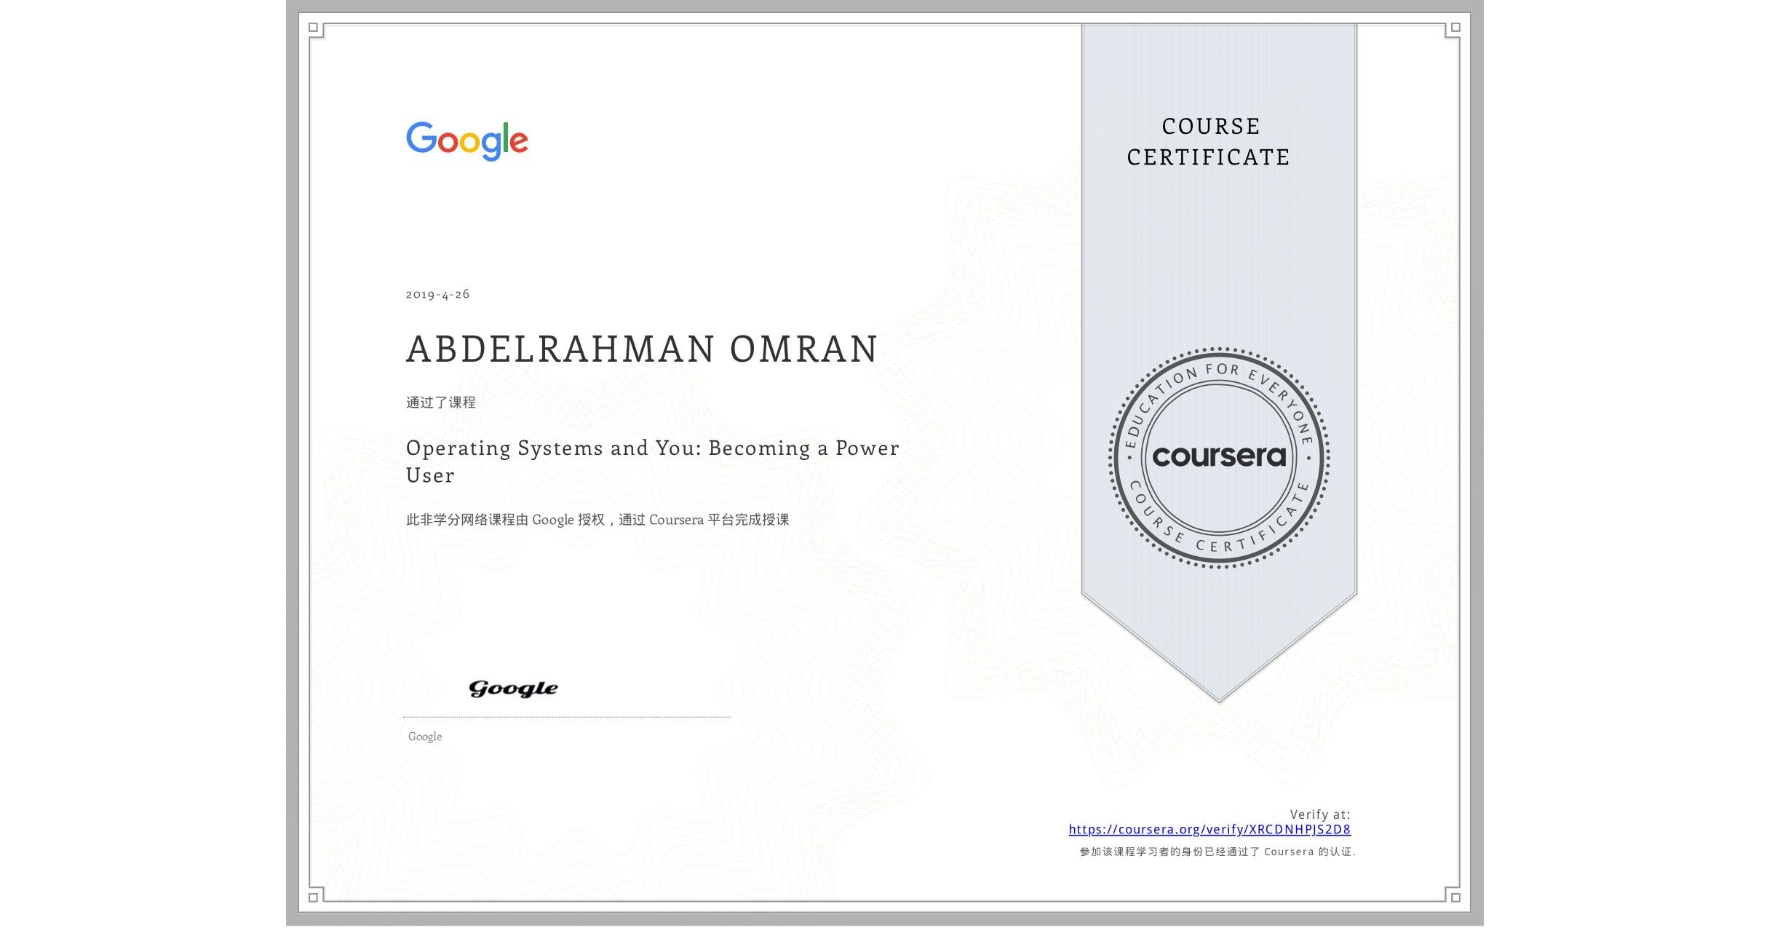 View certificate for ABDELRAHMAN OMRAN, Operating Systems and You: Becoming a Power User, an online non-credit course authorized by Google and offered through Coursera